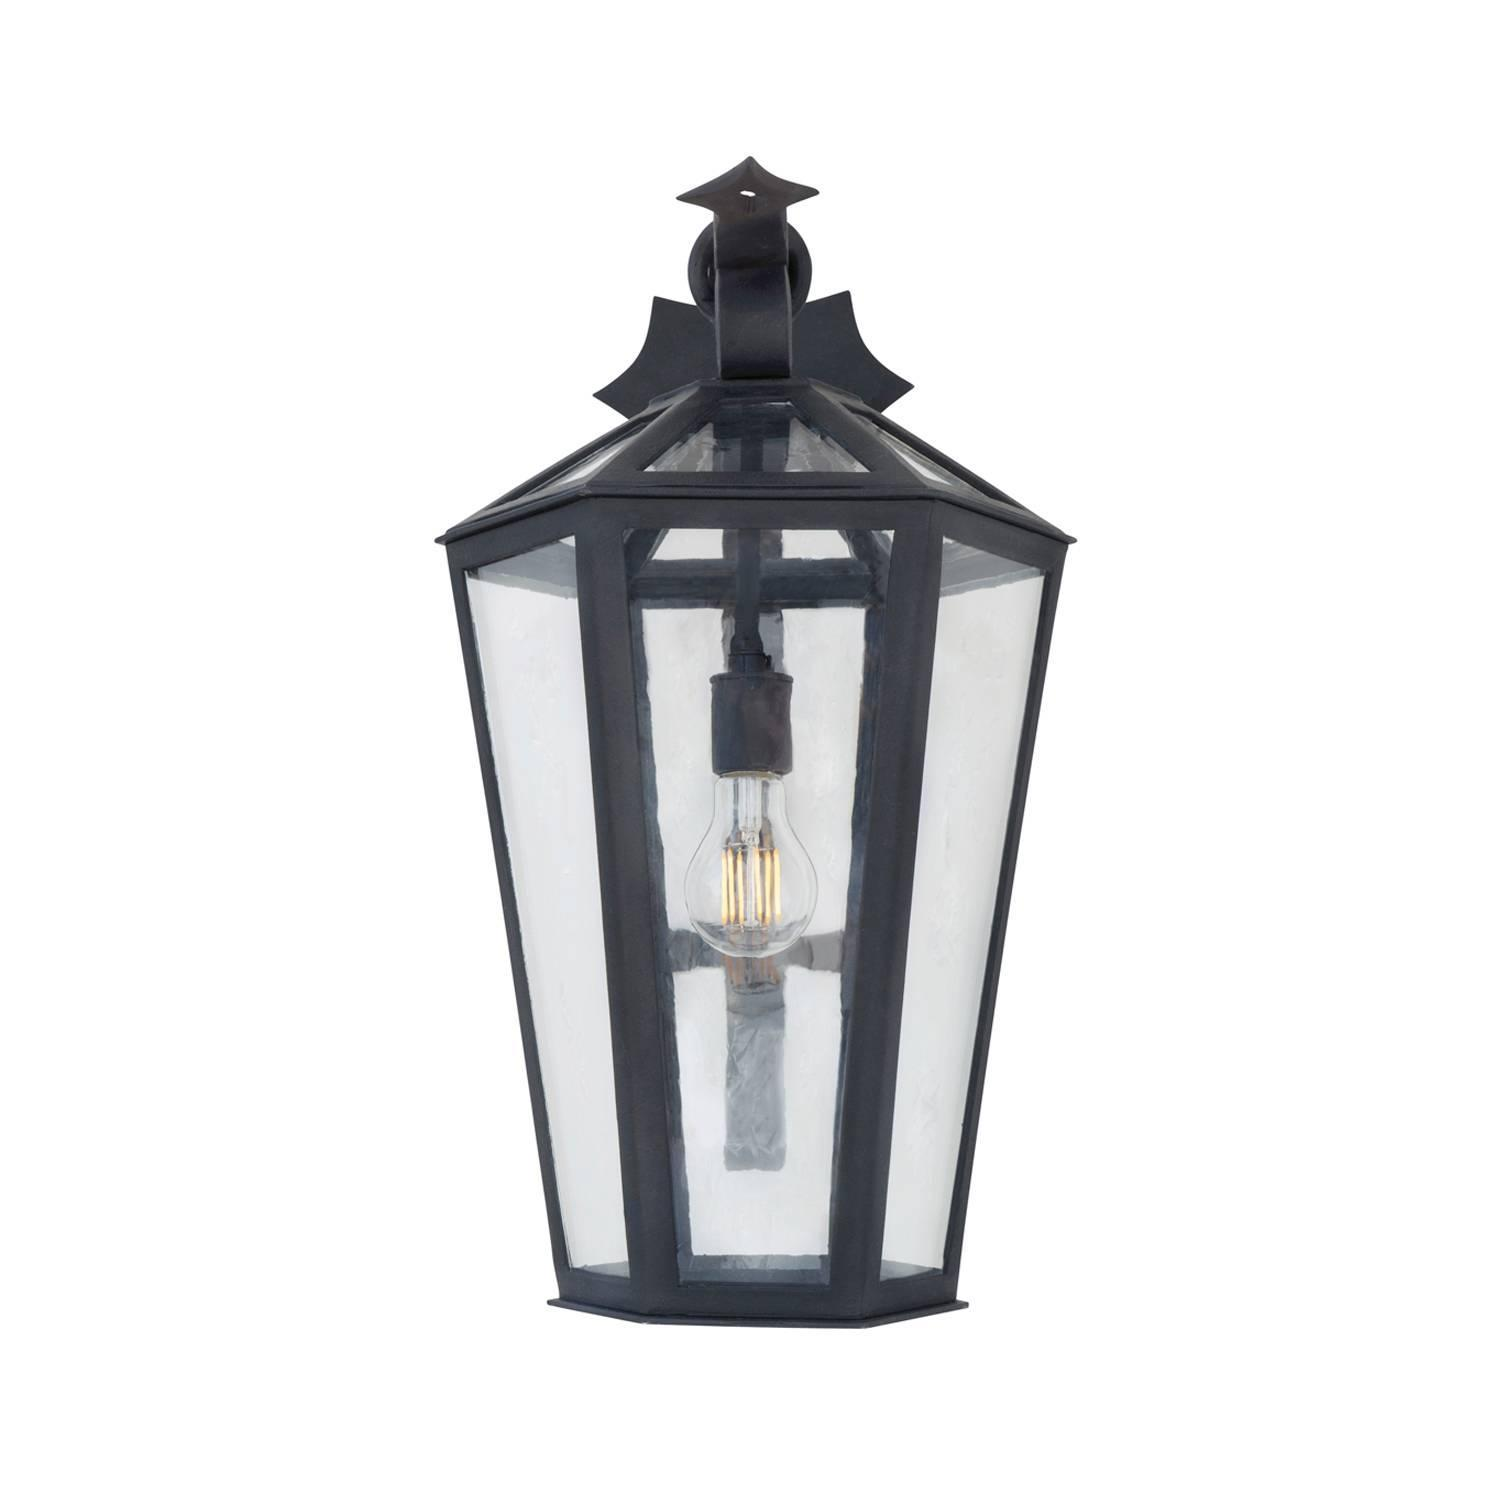 New Large Wrought Iron Arm Mount Exterior Outdoor Lantern By Anthony Grumbine For Sale At 1stdibs